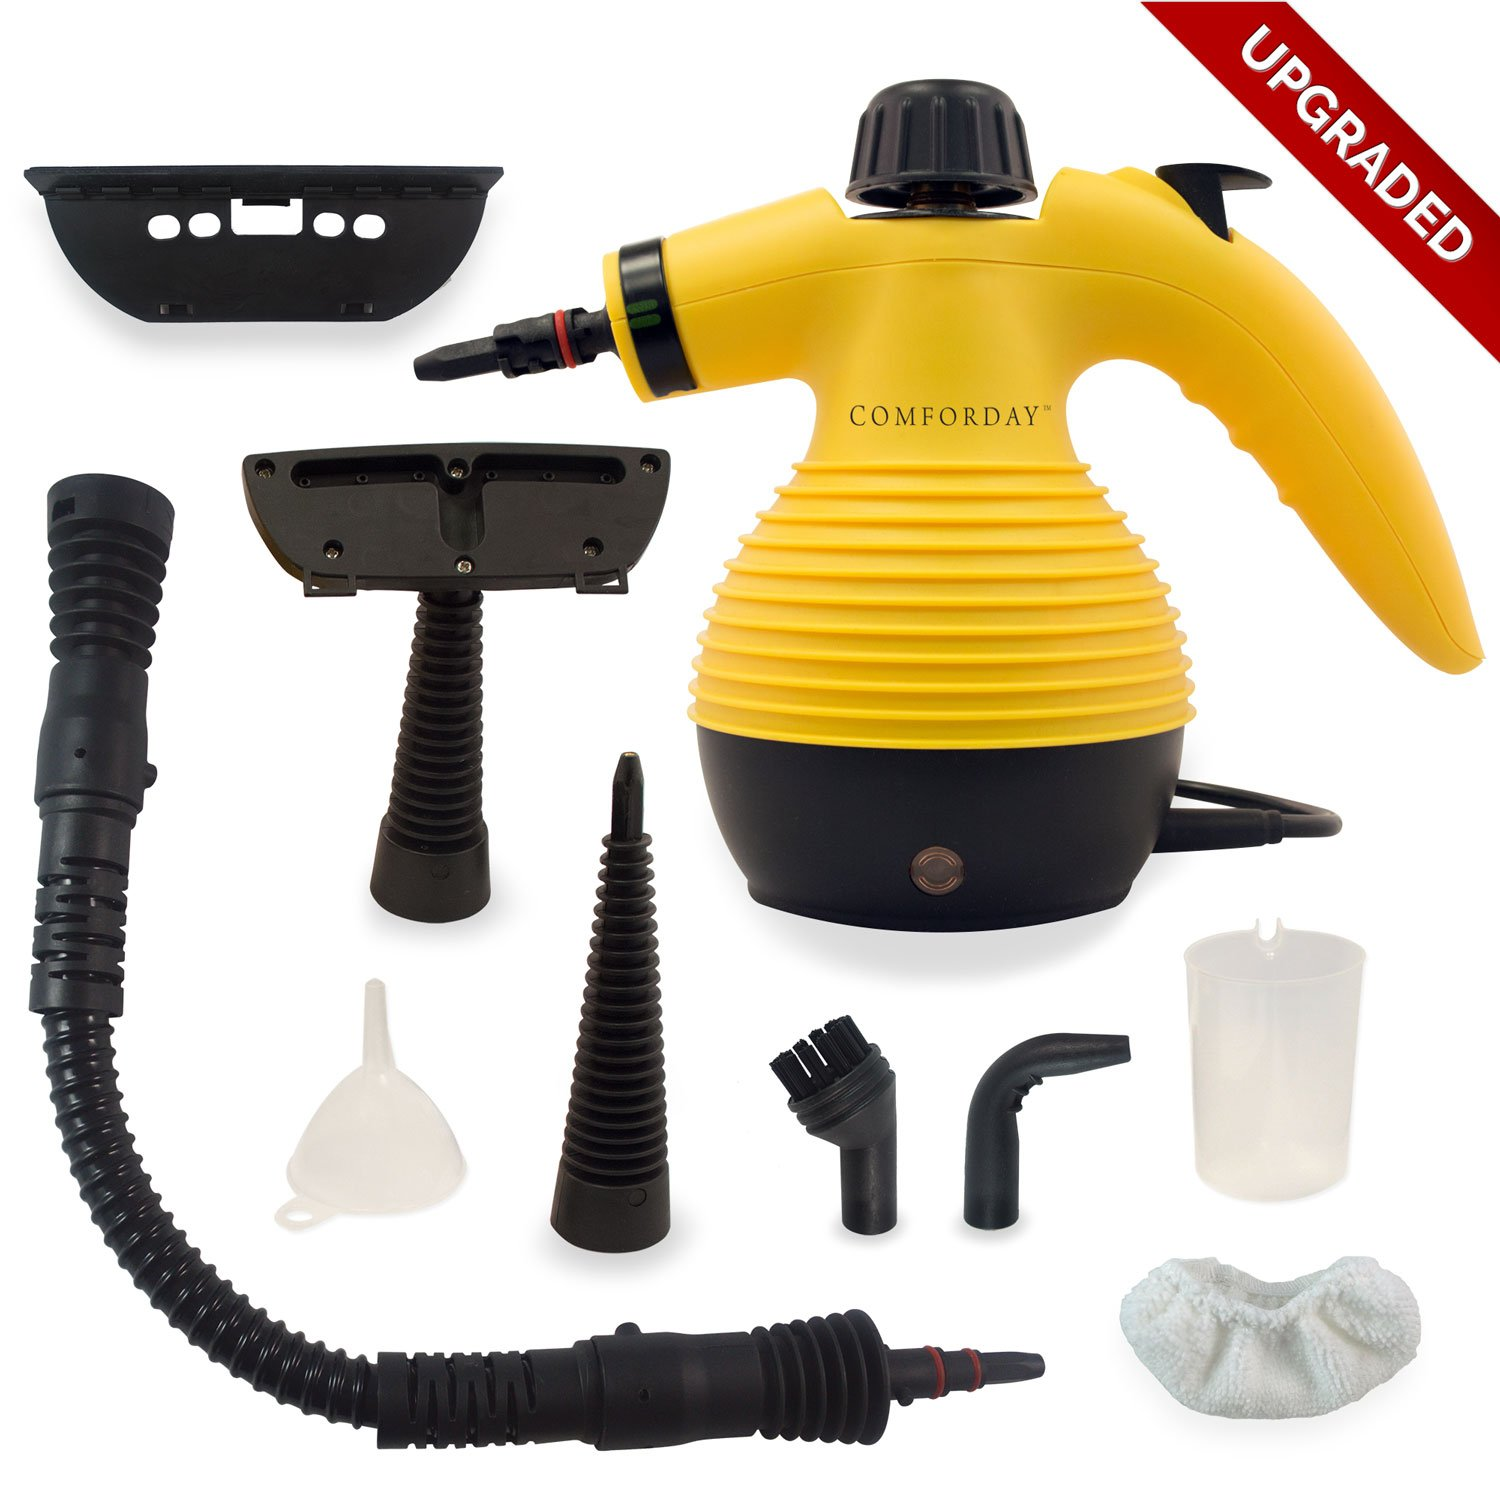 Comfor Electric Easy Handheld Steam Cleaner with 9-Piece Accessories Used to Clean the Doors, Carpets, Curtains, Kitchen Surface and more - image 6 de 6